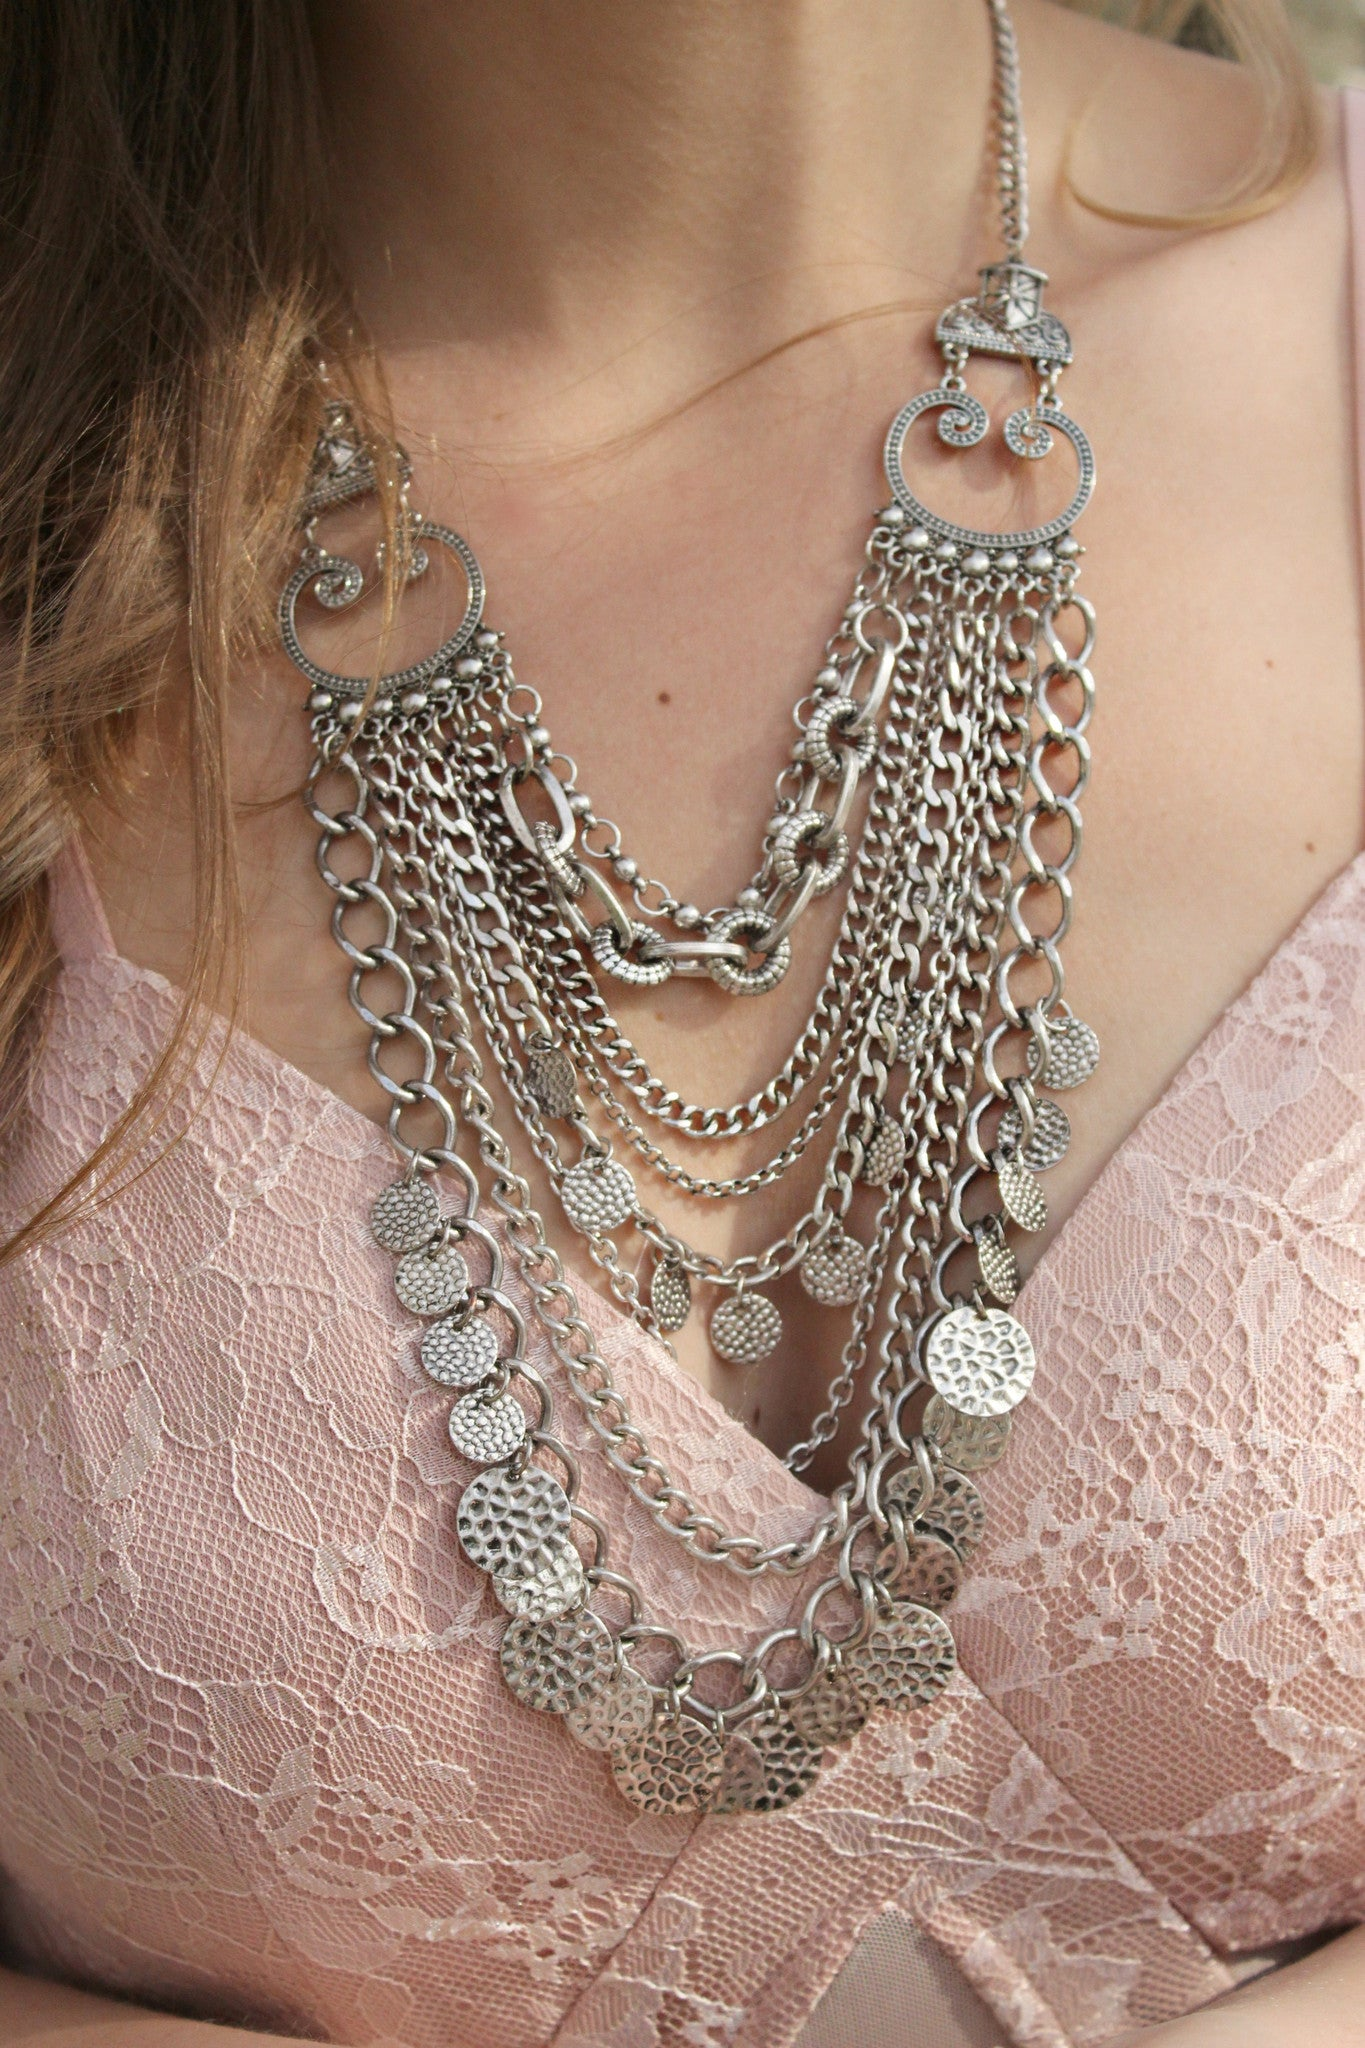 Hard To Please Necklace - Leah B. Boutique